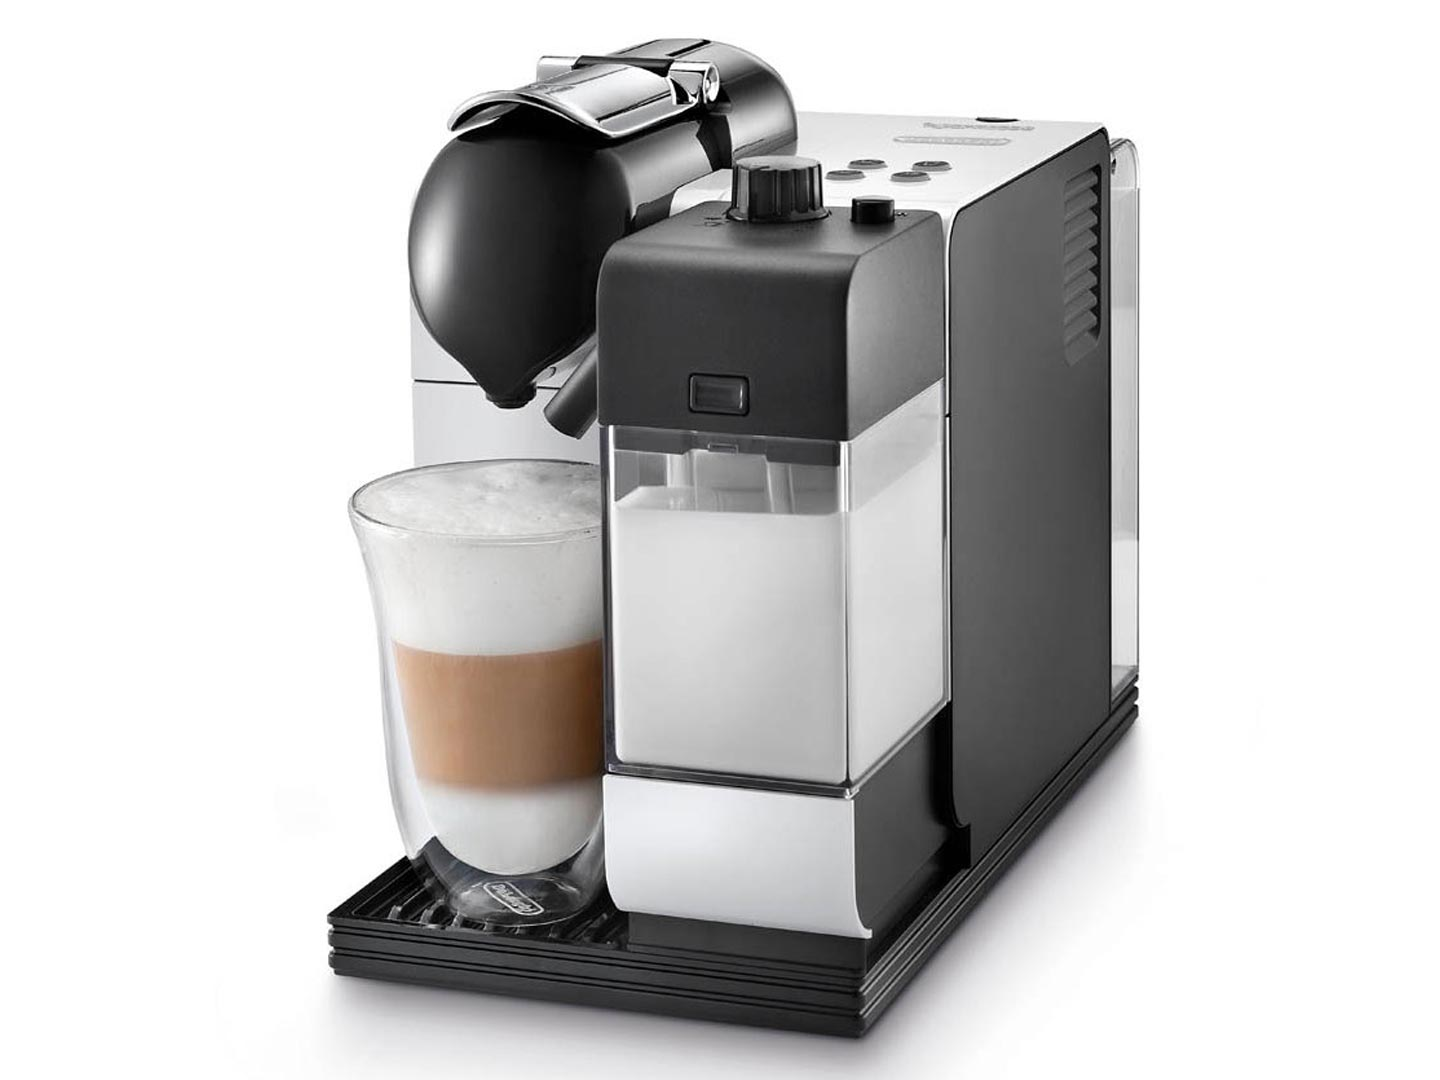 Aeroccino 3 An Amazing Milk Frother Sailbits